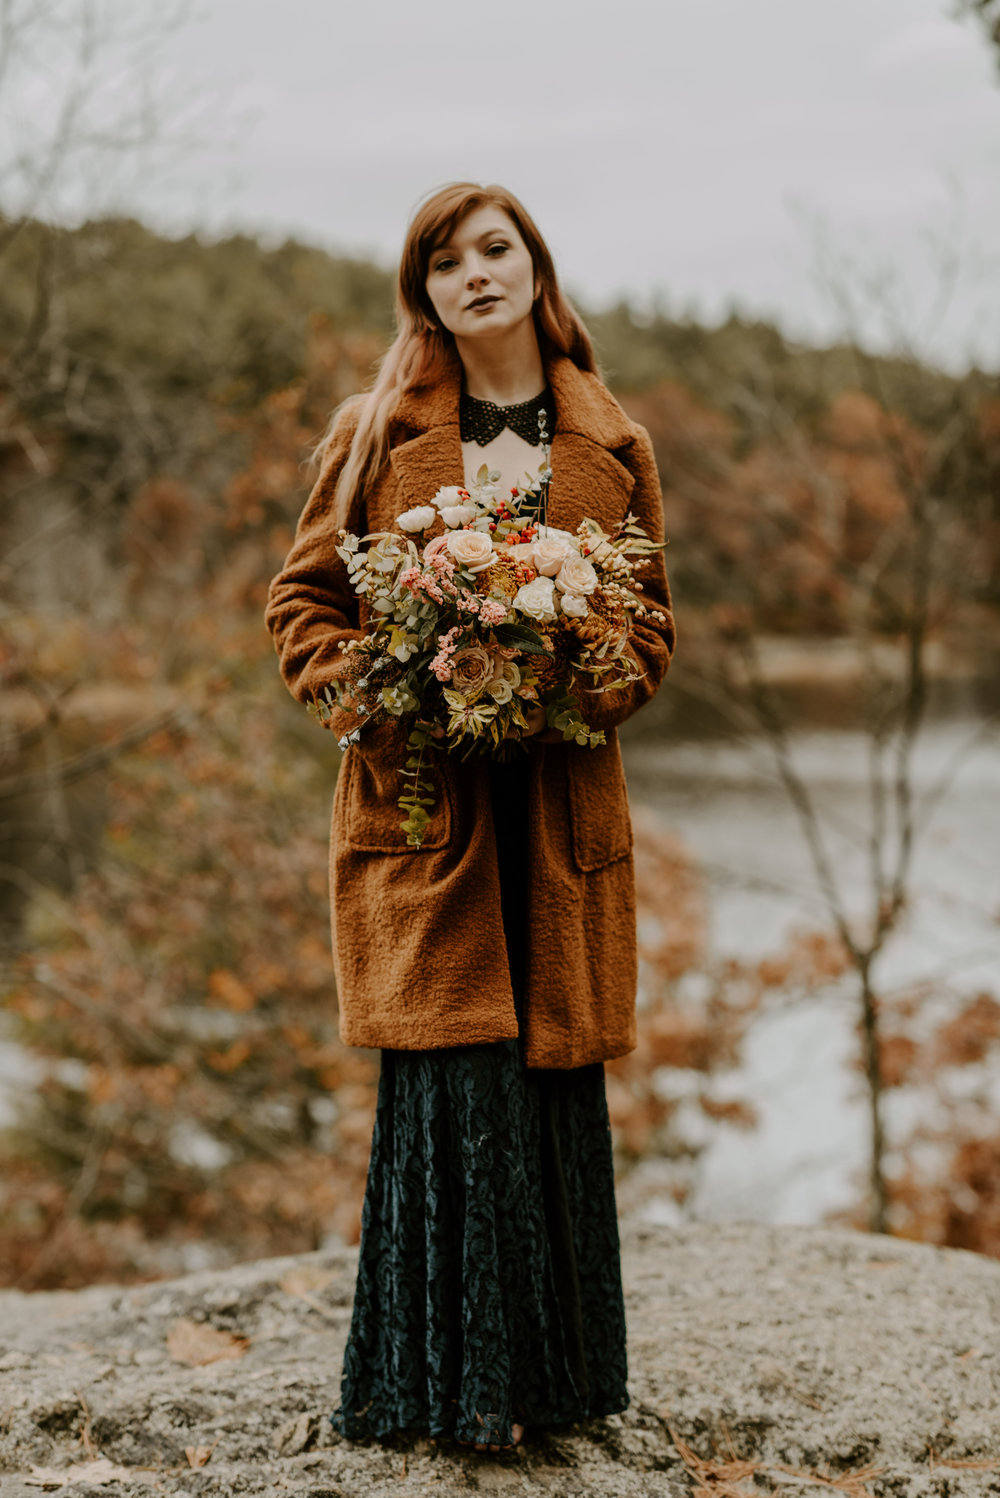 Styled Shoot: Twig and Briar Rustic Fall Wedding Inspiration | Boston Wedding Photographer | Madeline Rose Photography Co.